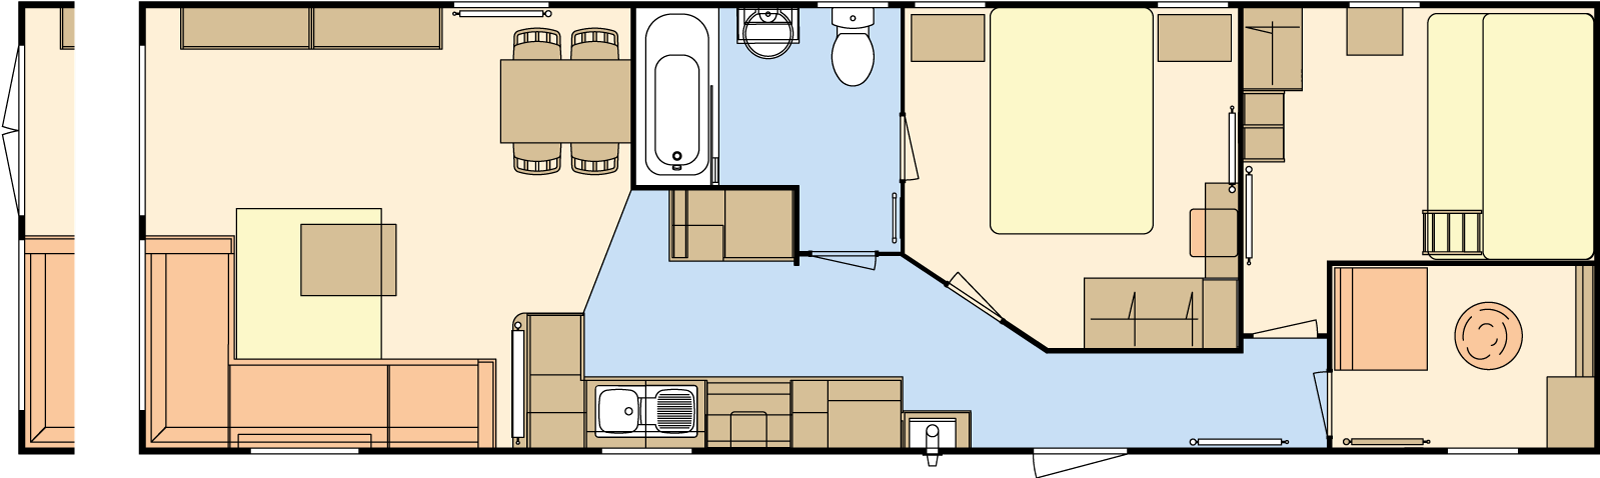 40 × 12 – 2 bedroom/6 berth